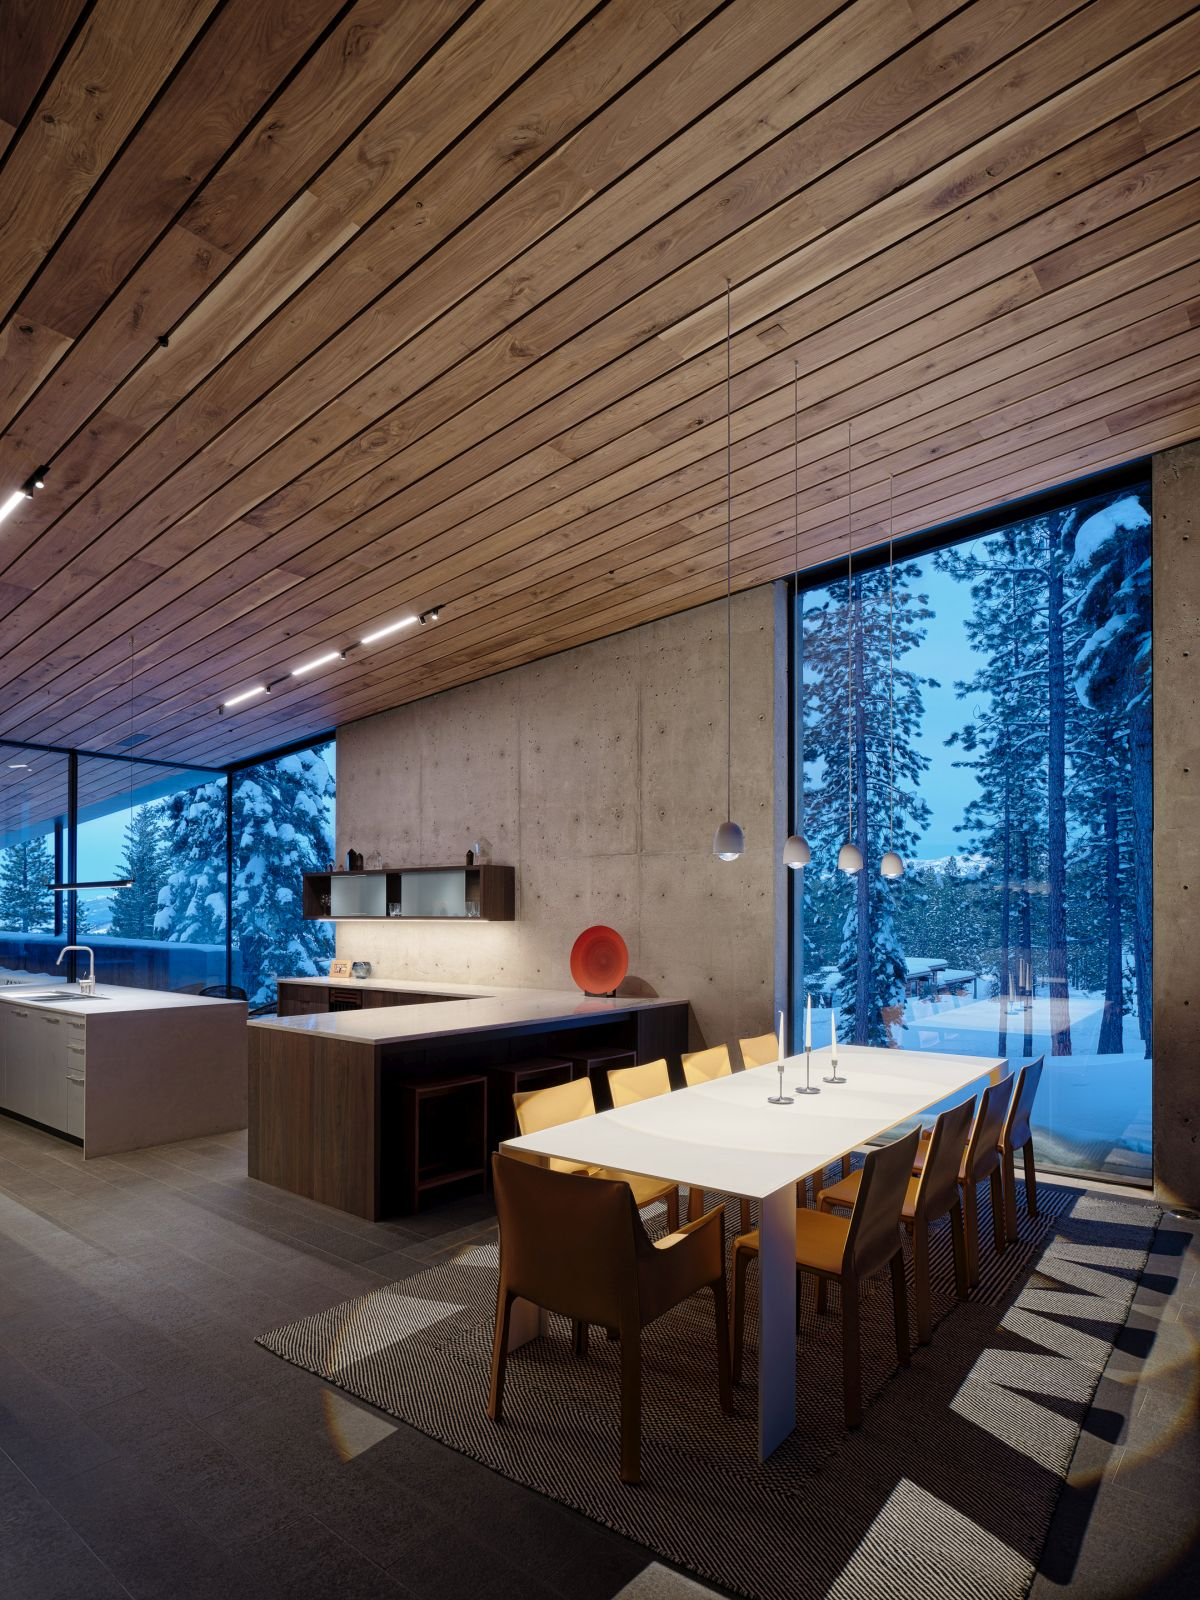 The kitchen and dining area share a large open space with a wooden ceiling, concrete walls and full height windows